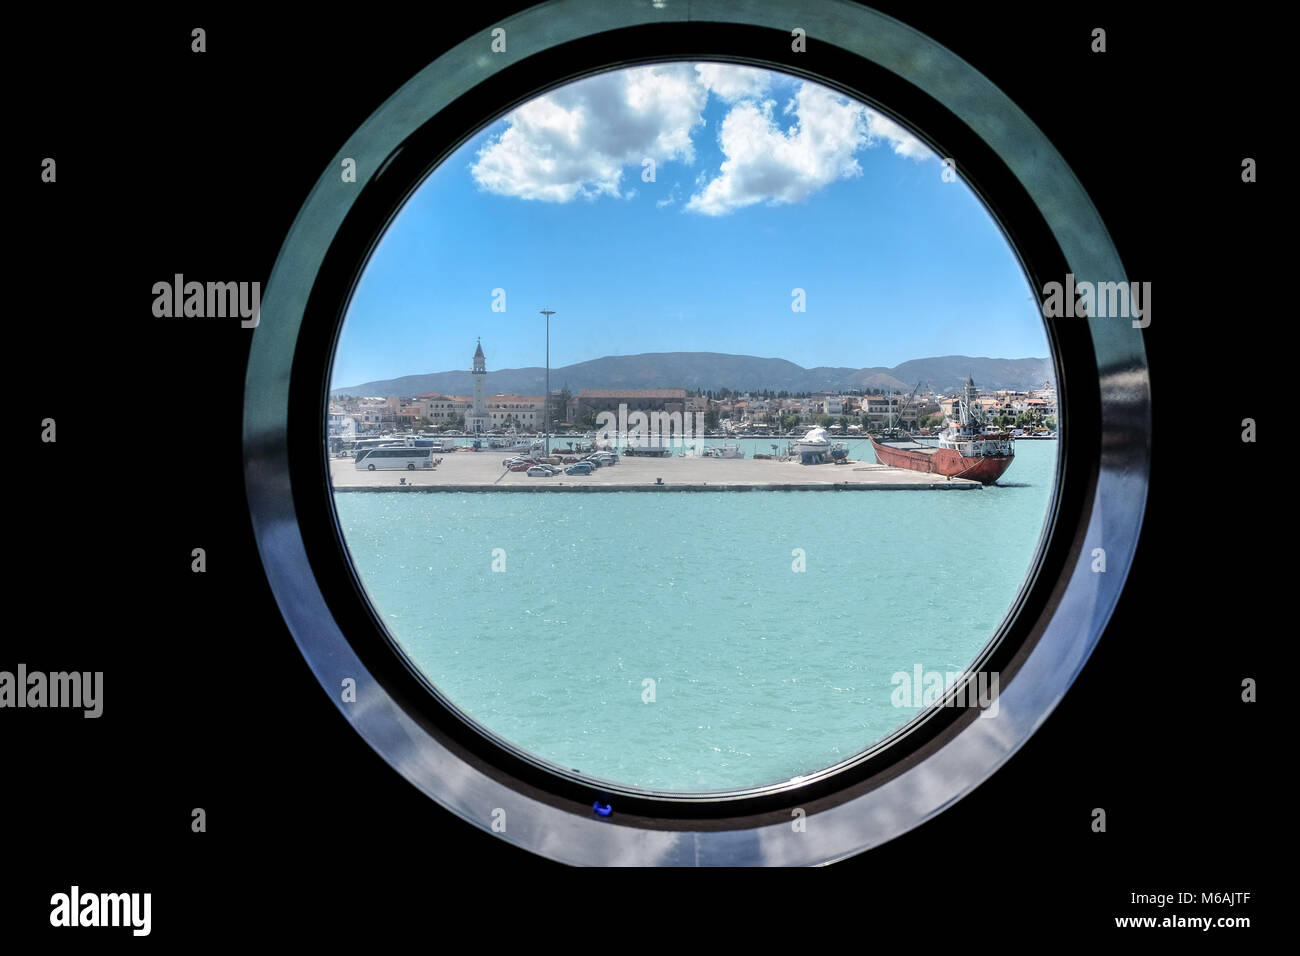 Zante Twon Zakynthos as see from the window of a Ferryboat - Stock Image